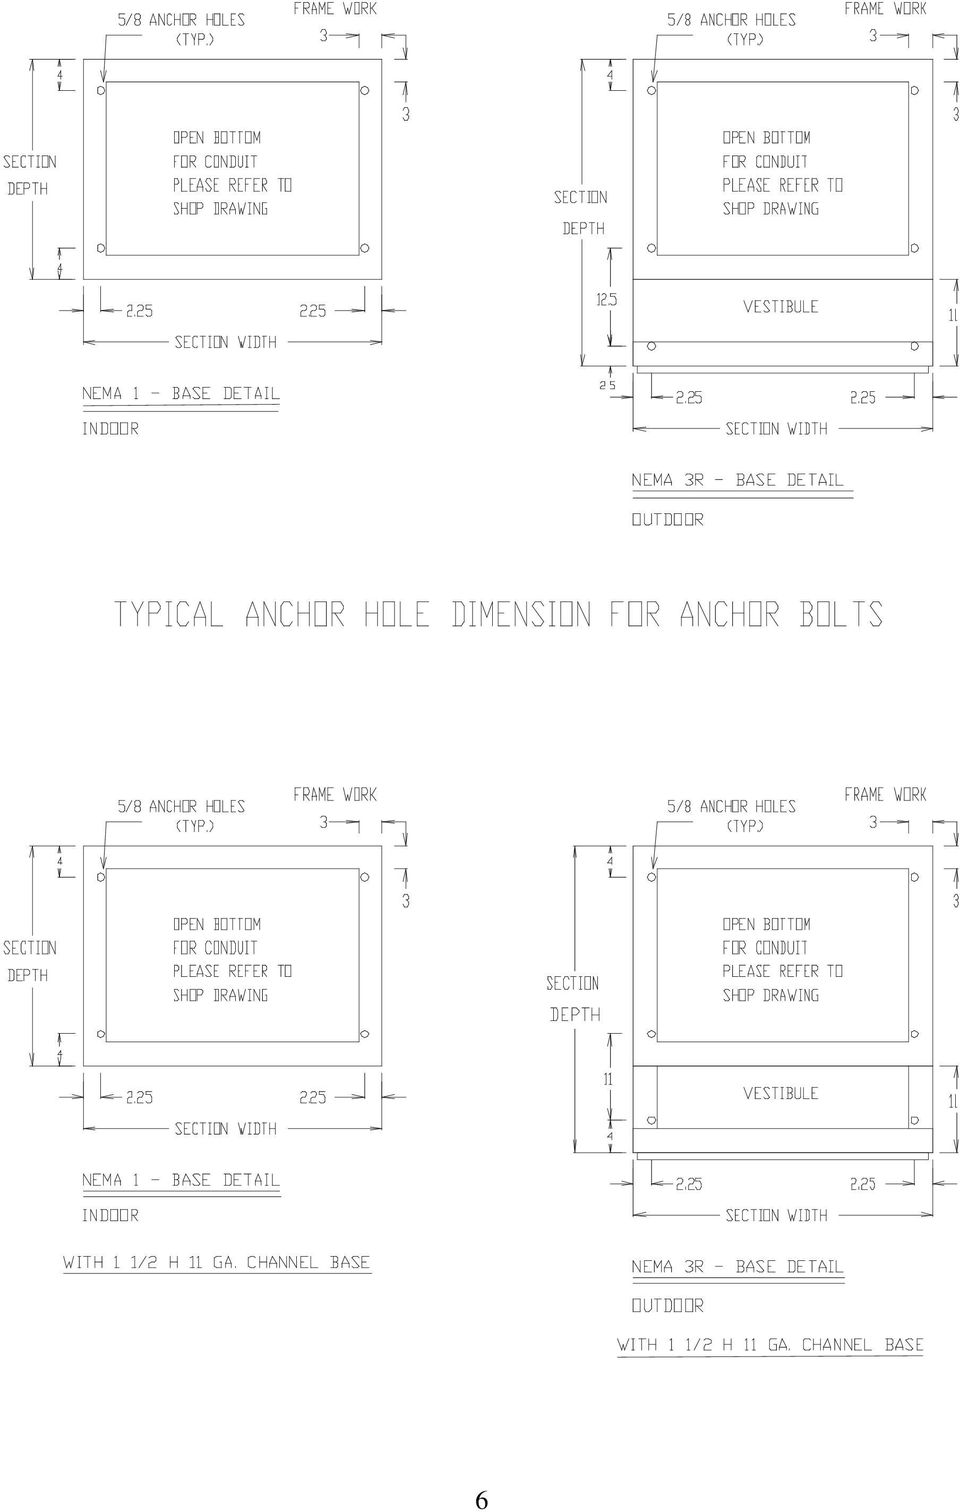 Switchboard Installation And Maintenance Manual Pdf Carrier Rva C Wiring Diagram Installing Contractor Part Ii Care Should Be Taken To Locate The In Accordance With Latest Edition Of National Electrical Code